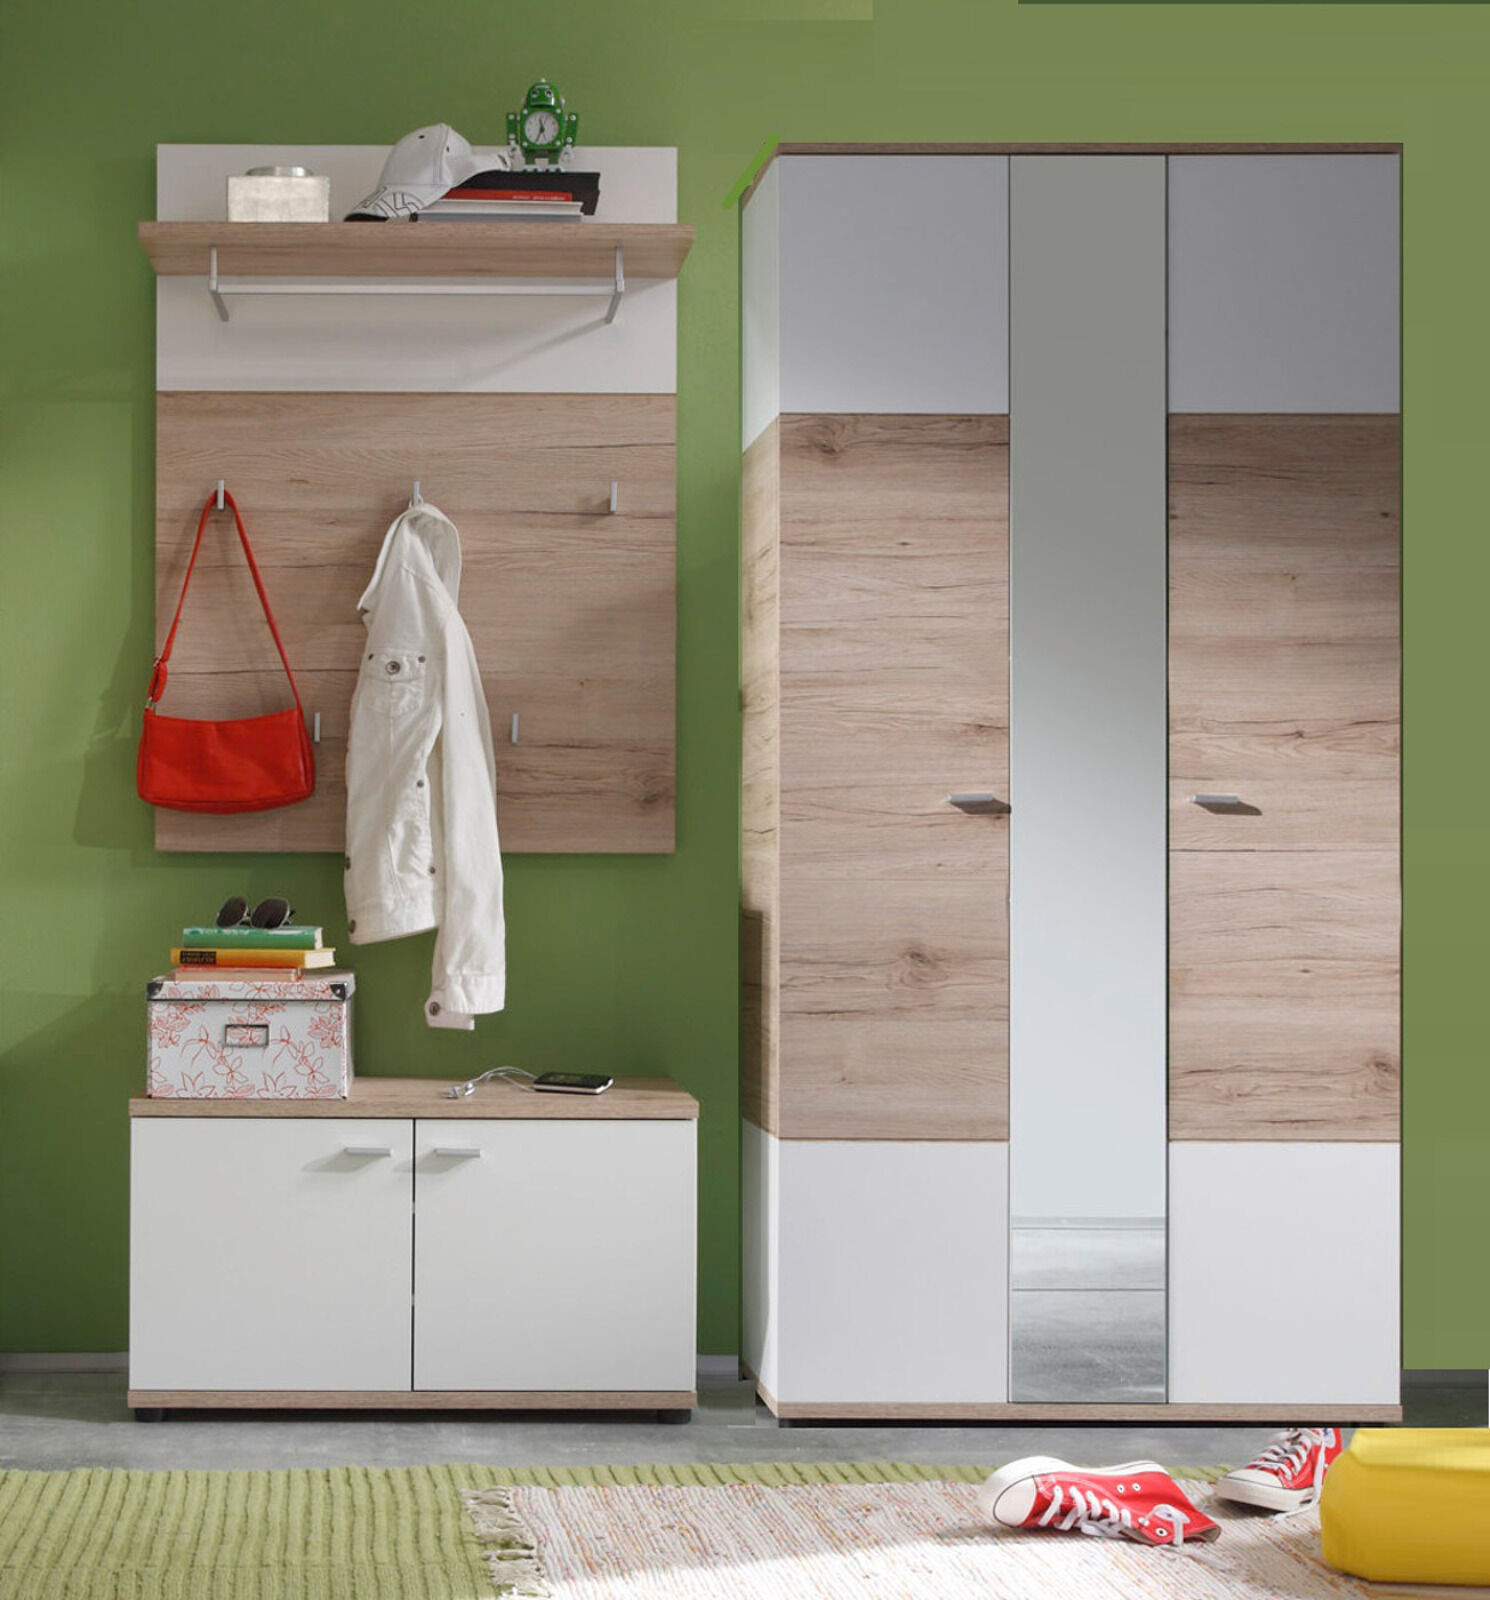 garderoben set flurgarderobe 3 tlg wei und eiche mit paneel bank schrank campus eur 354 99. Black Bedroom Furniture Sets. Home Design Ideas